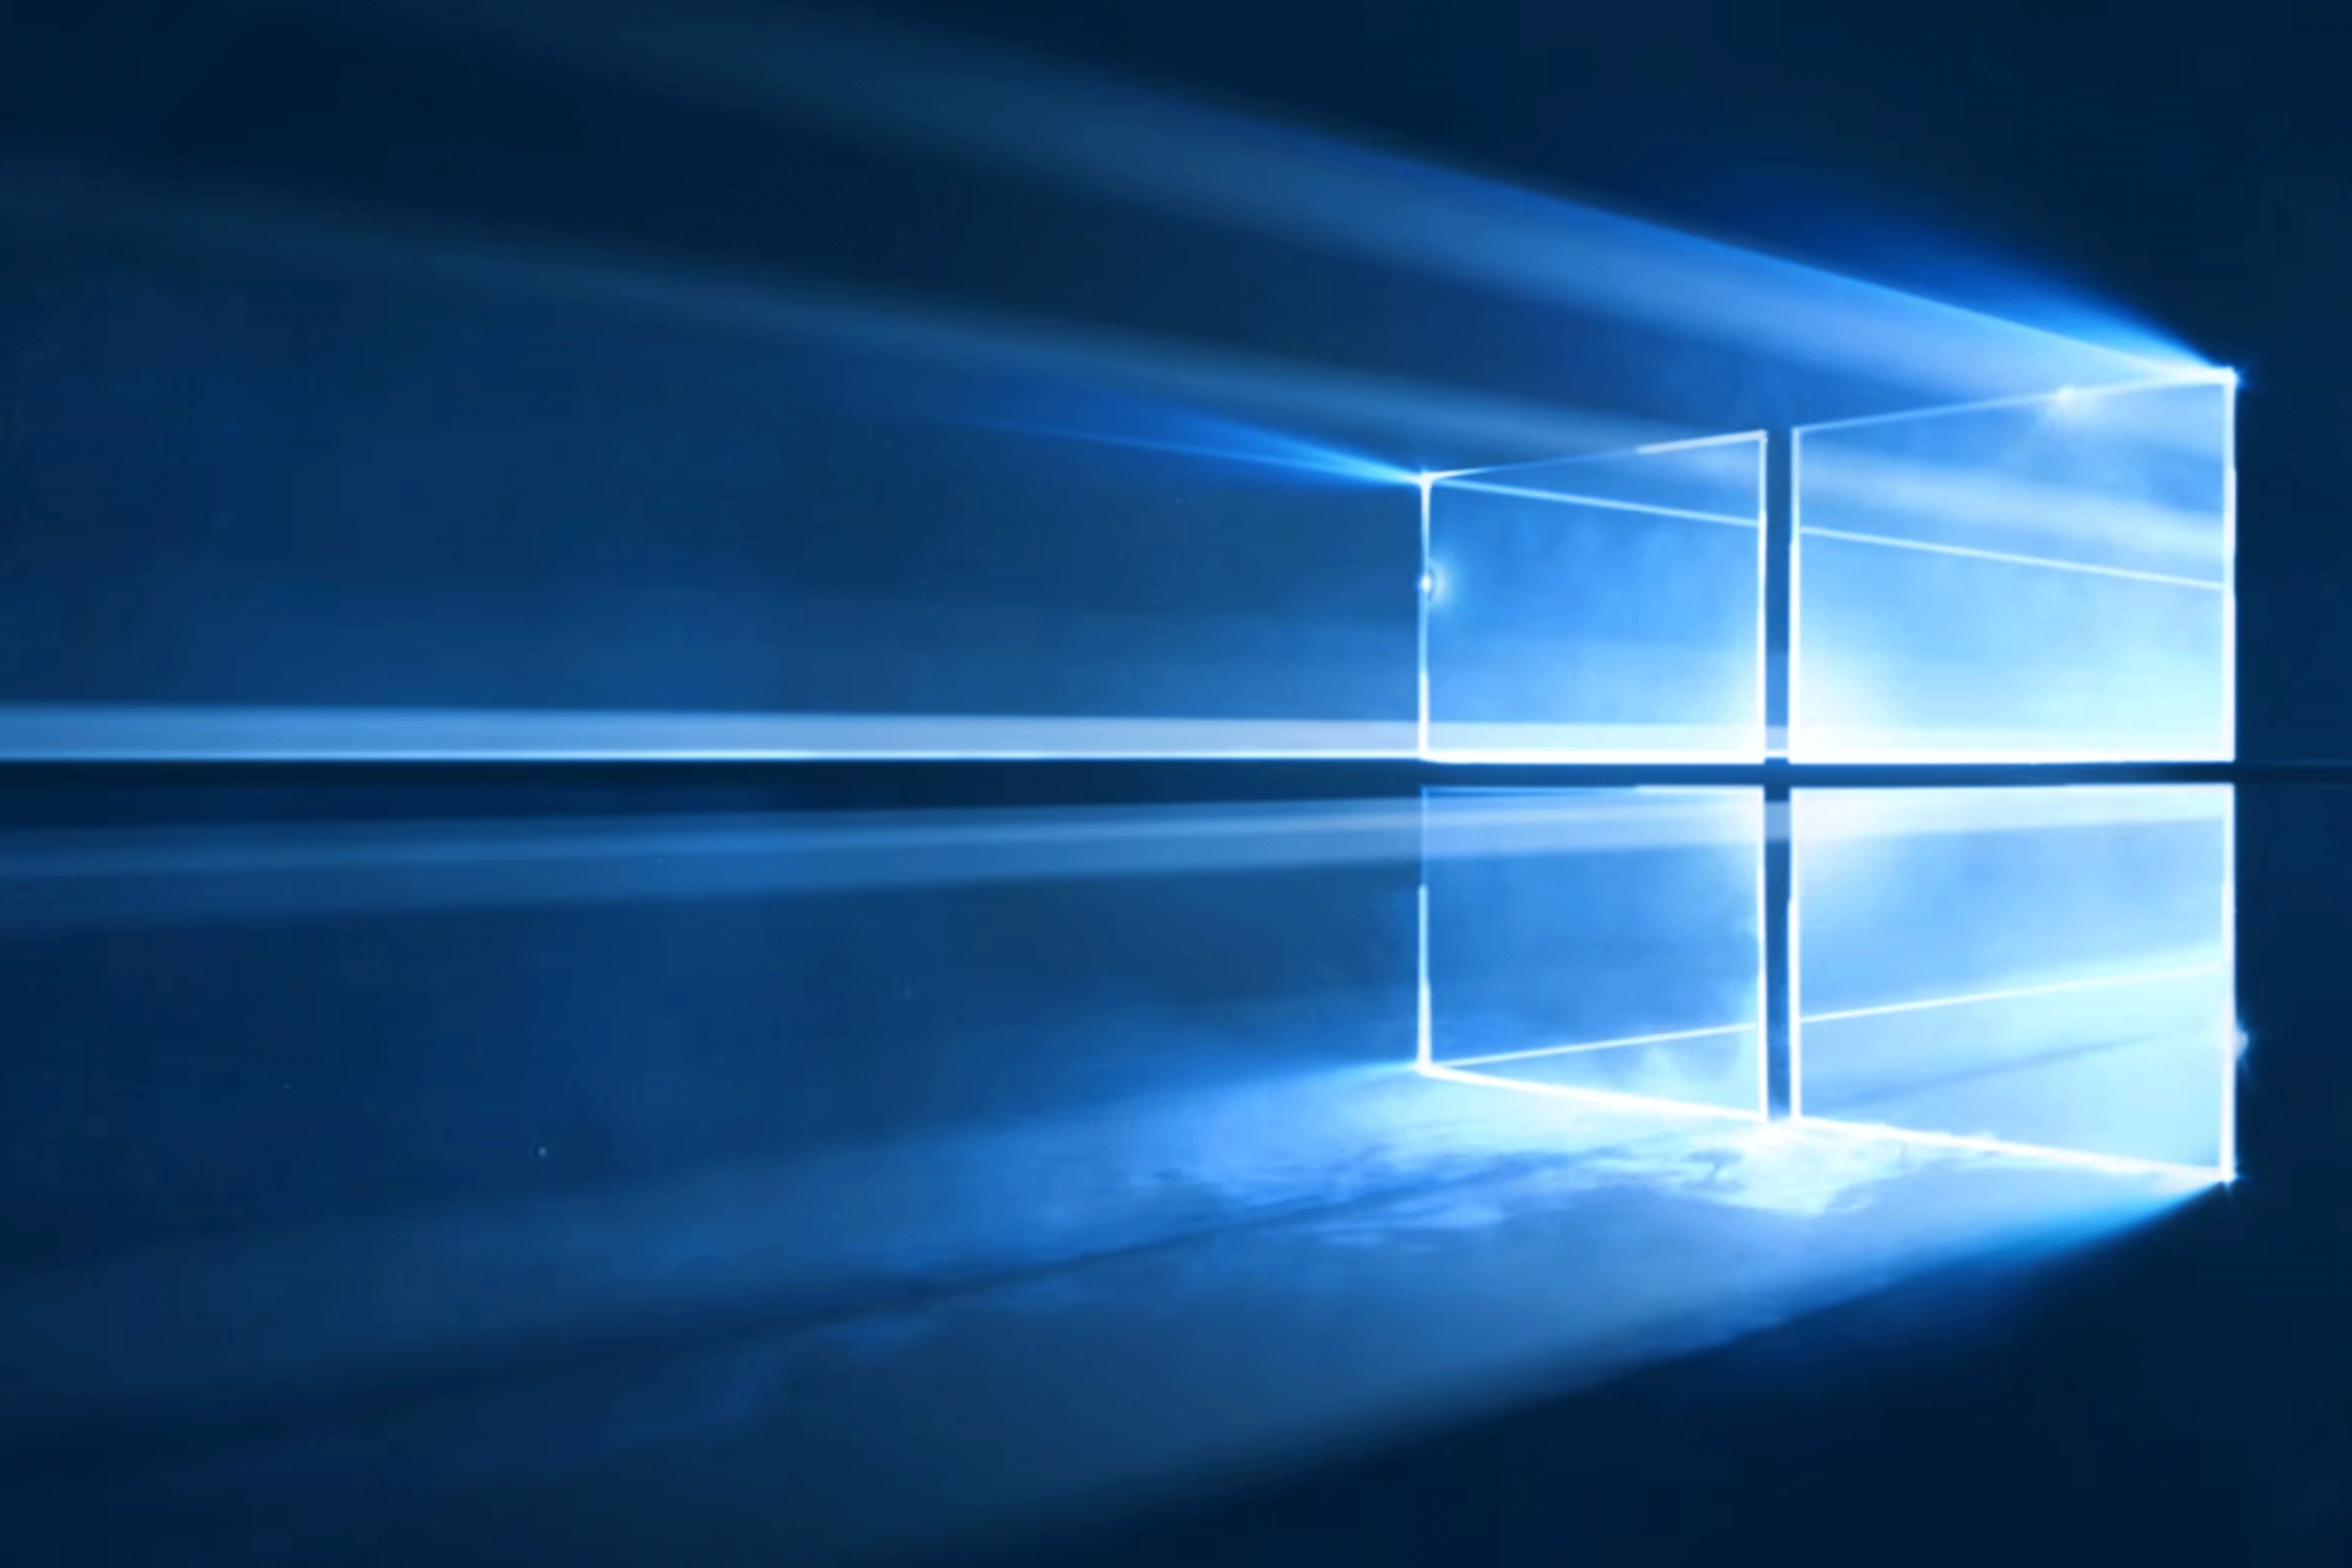 Want to Use Windows 10 for Its Easier Than Youd Think 3240x2160